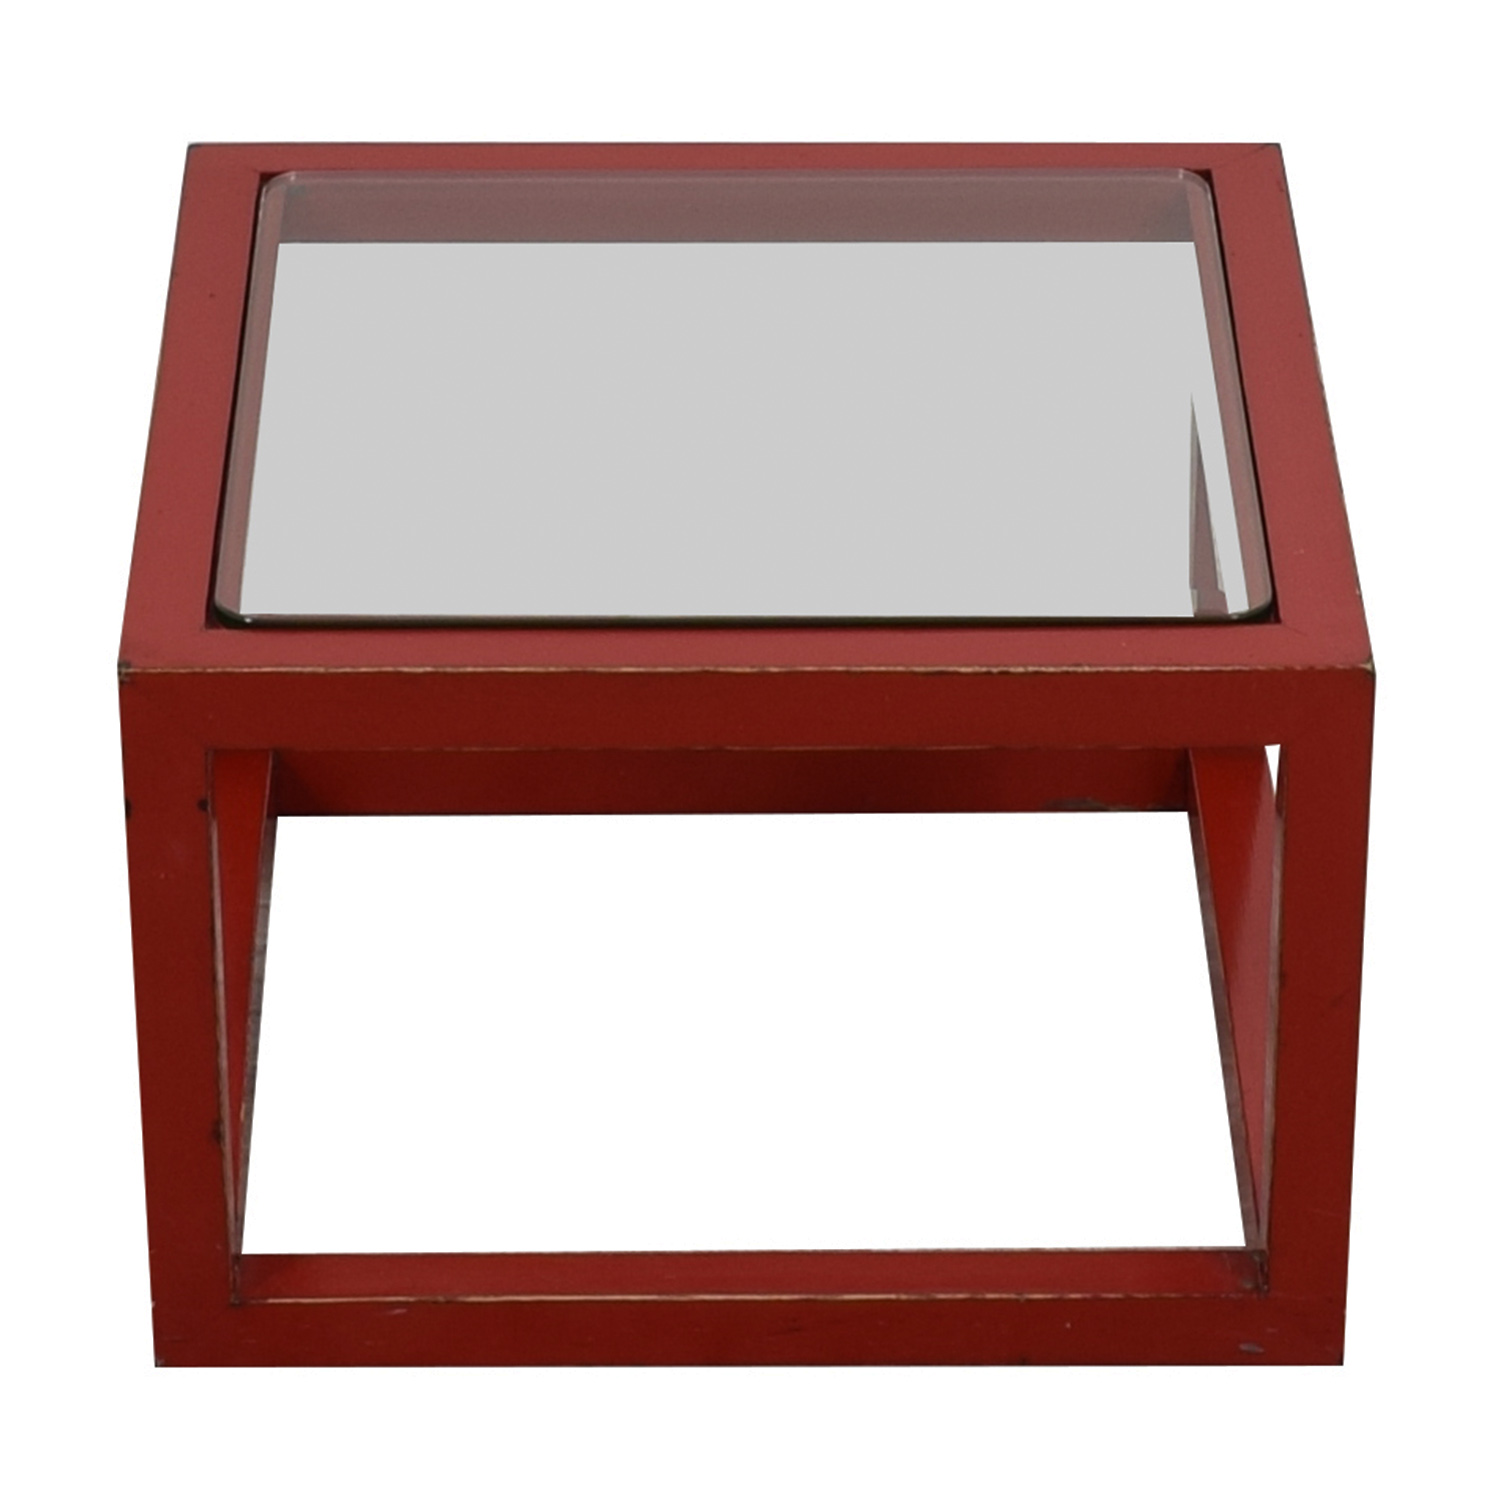 buy Crate & Barrel Modern Glass Top Red Coffee Table Crate & Barrel Tables